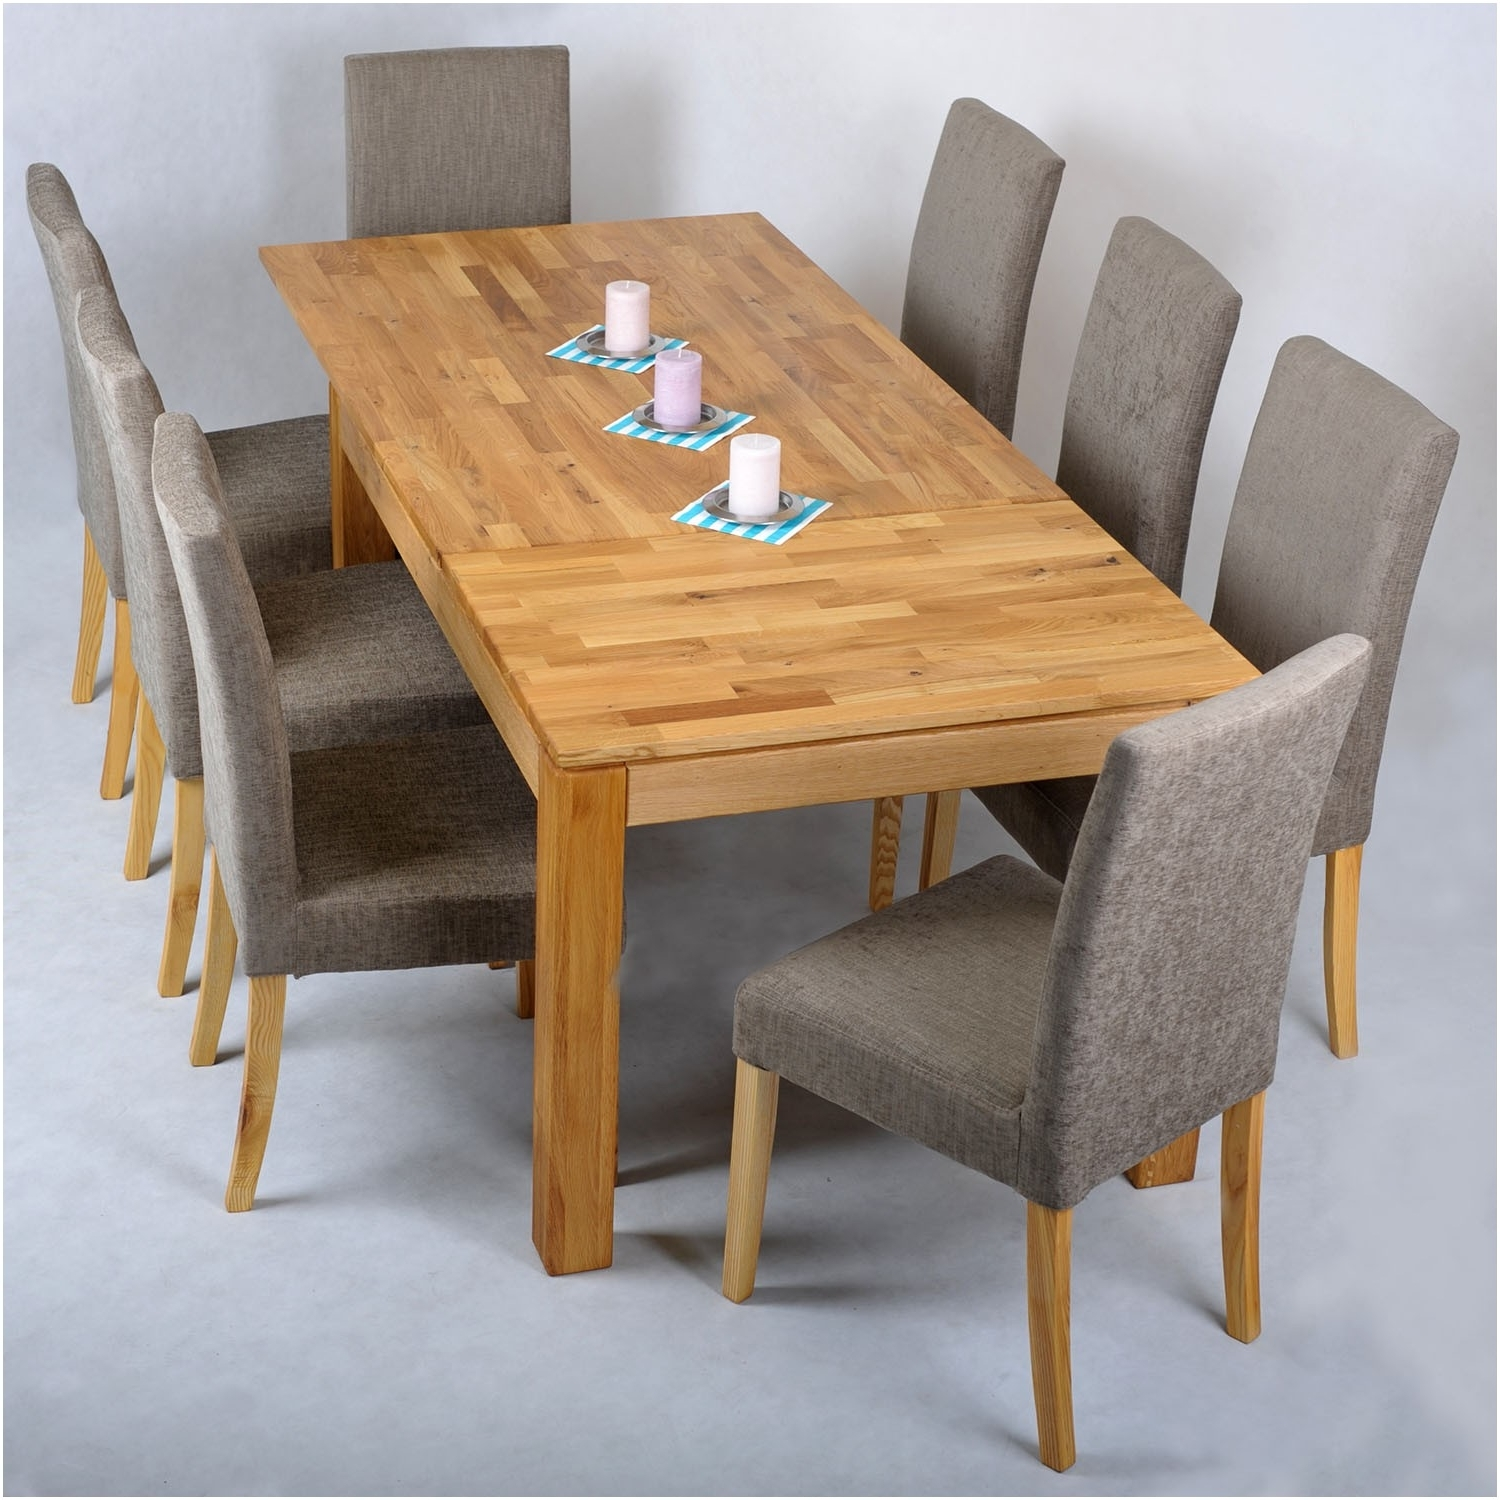 Ericamchristensen With Famous Oak Extending Dining Tables And Chairs (View 7 of 25)